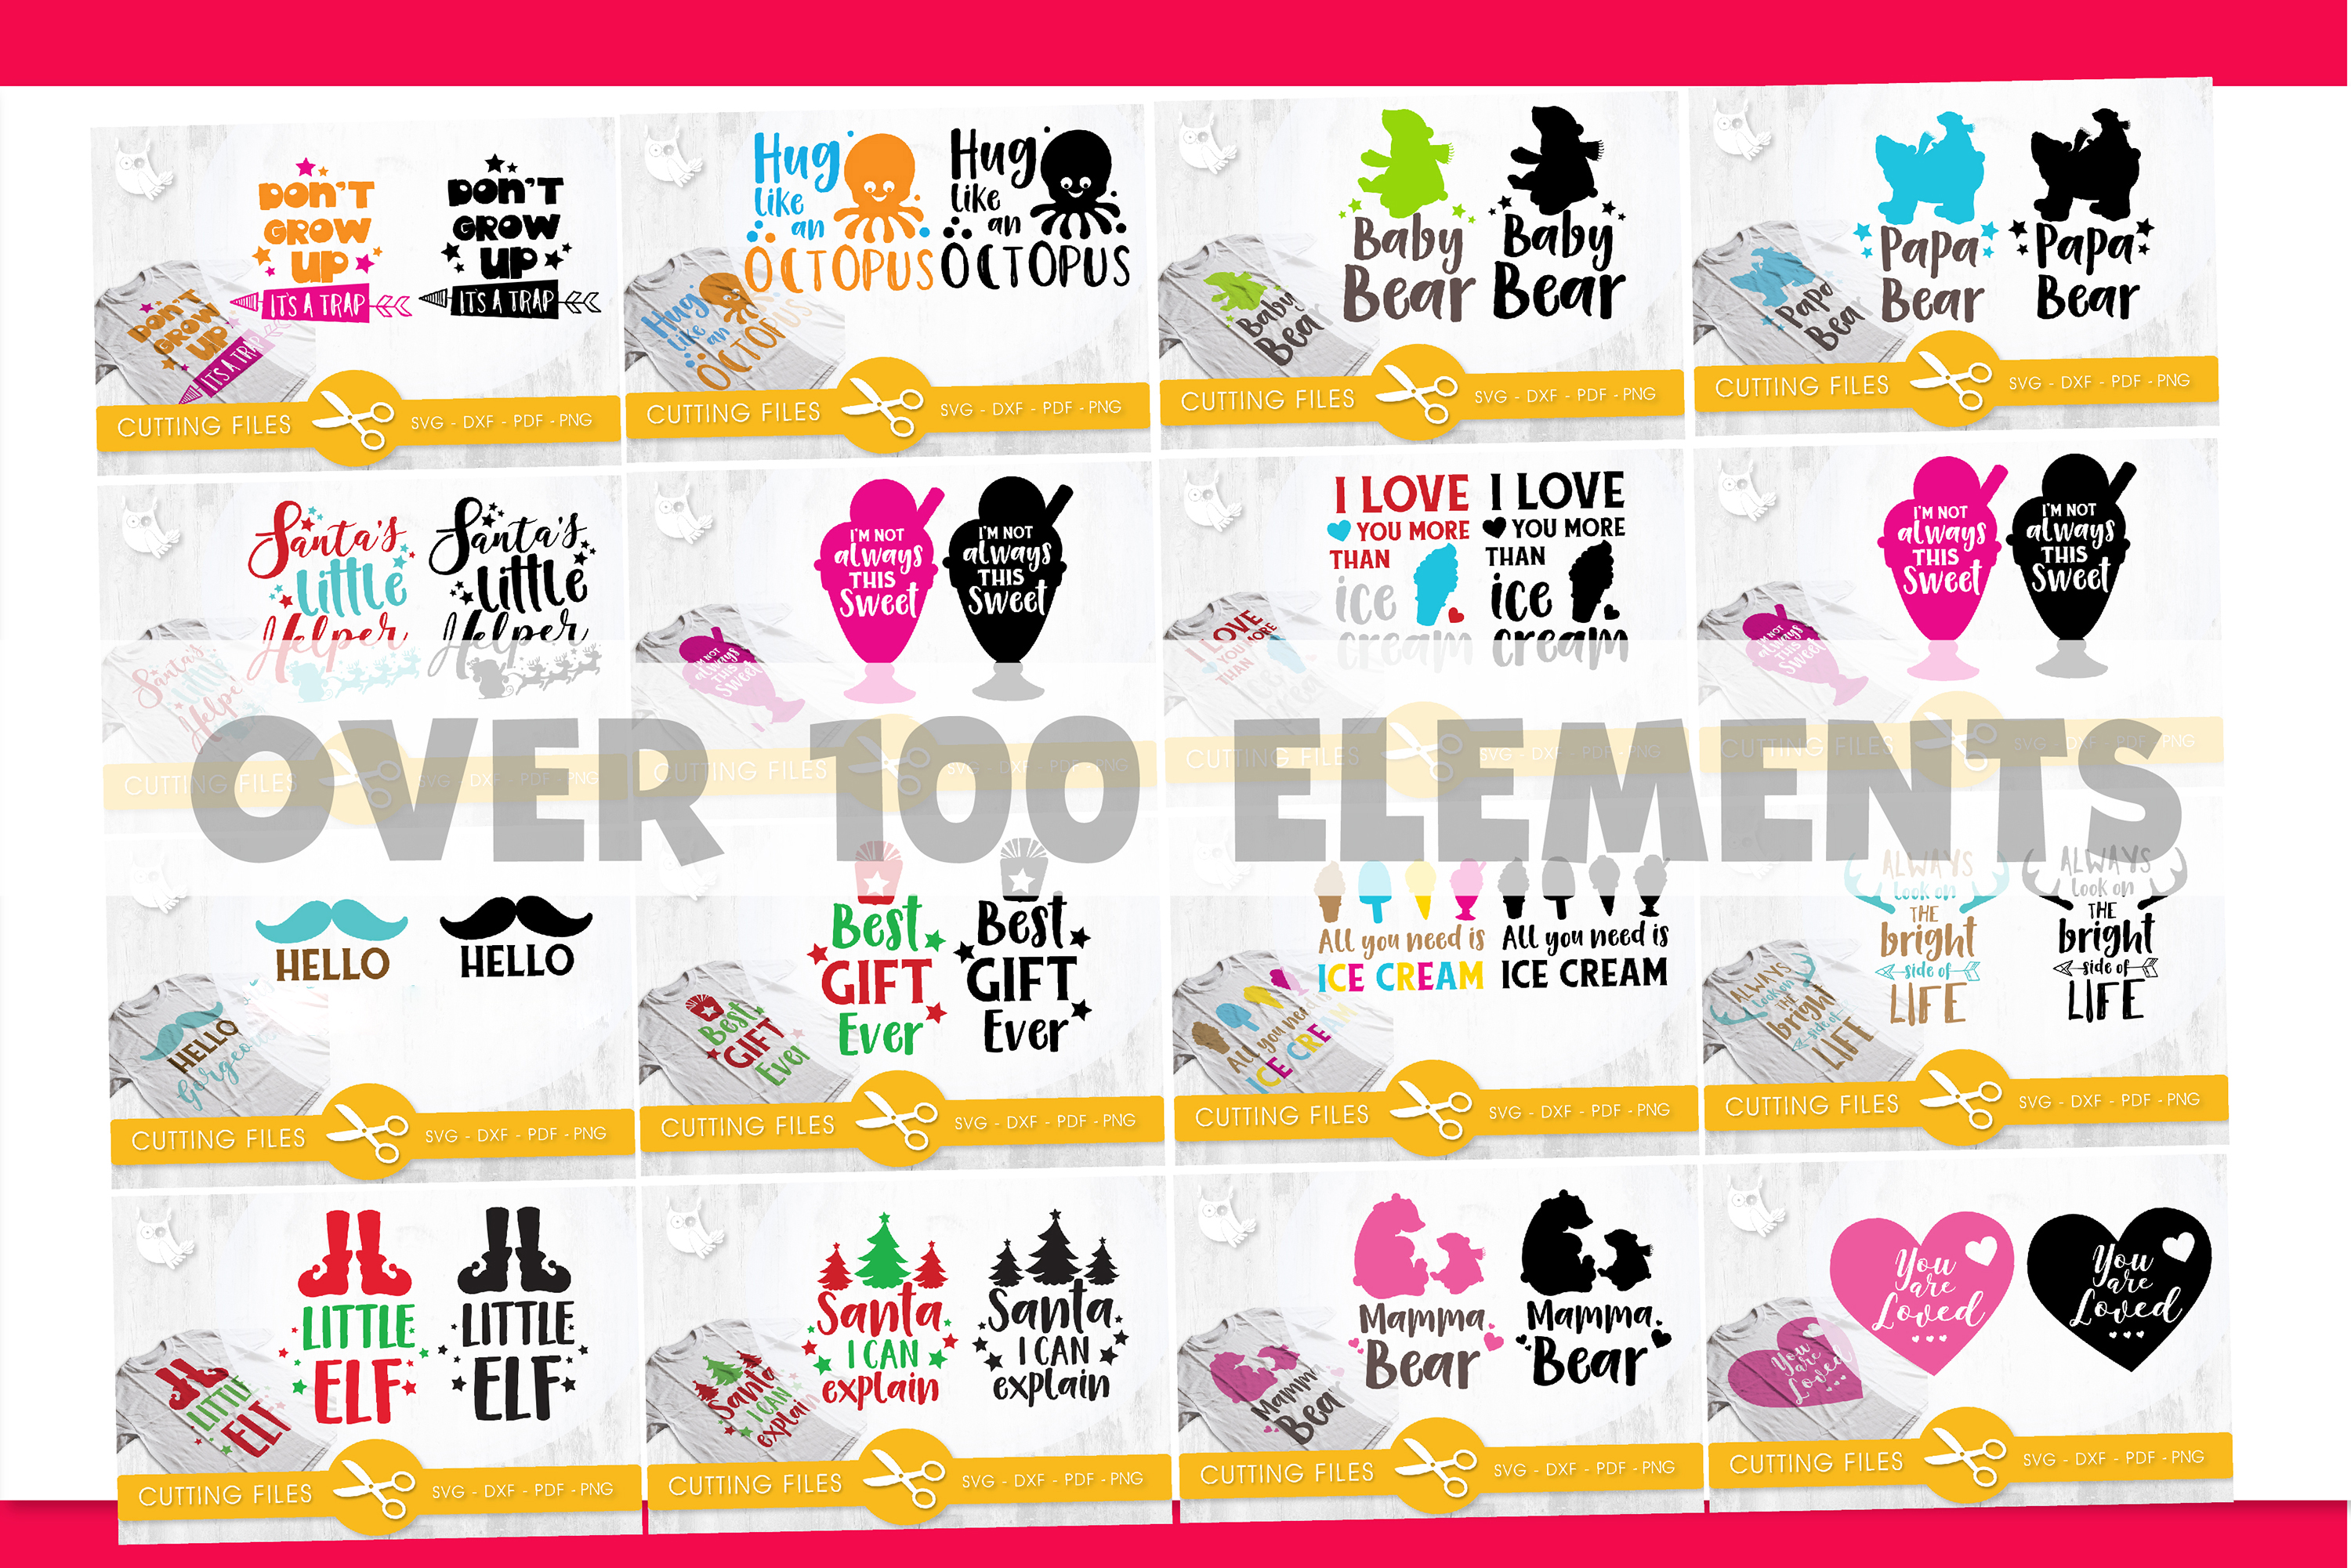 MEGA BUNDLE PART40 - 40000 in 1 Full Collection example image 4